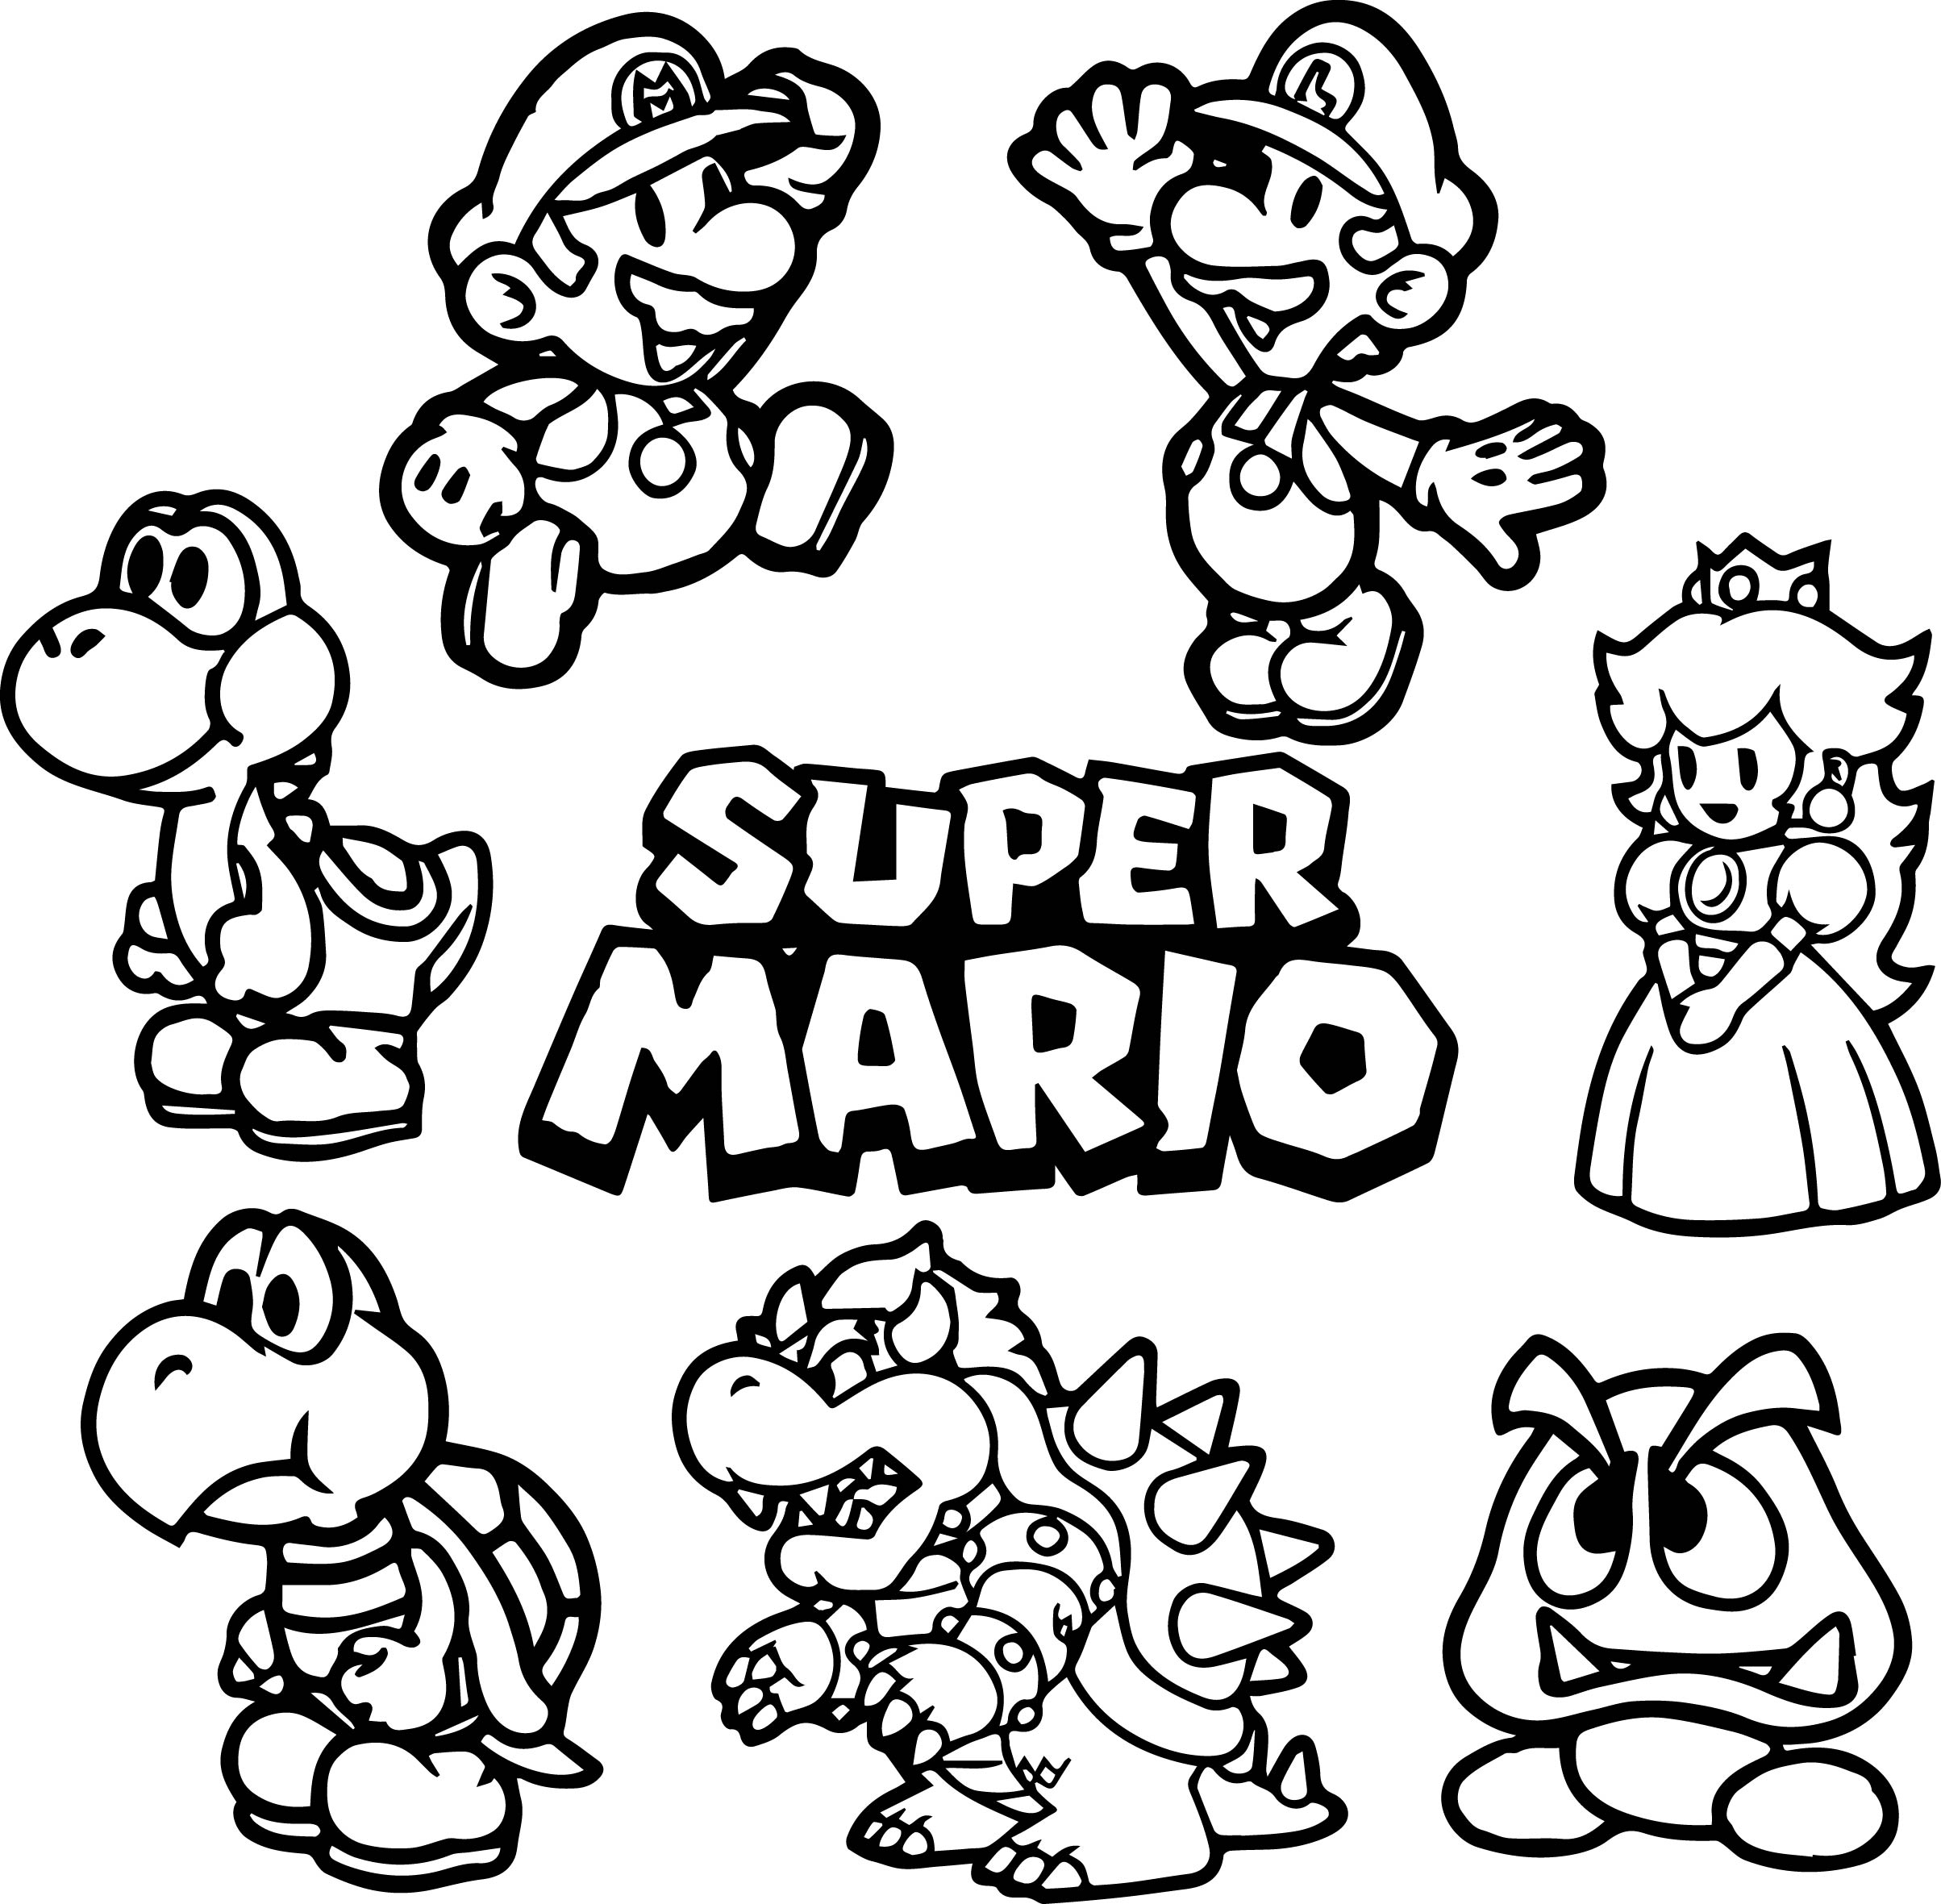 Princess lillifee coloring pages - Super Mario Coloring Pages Toad